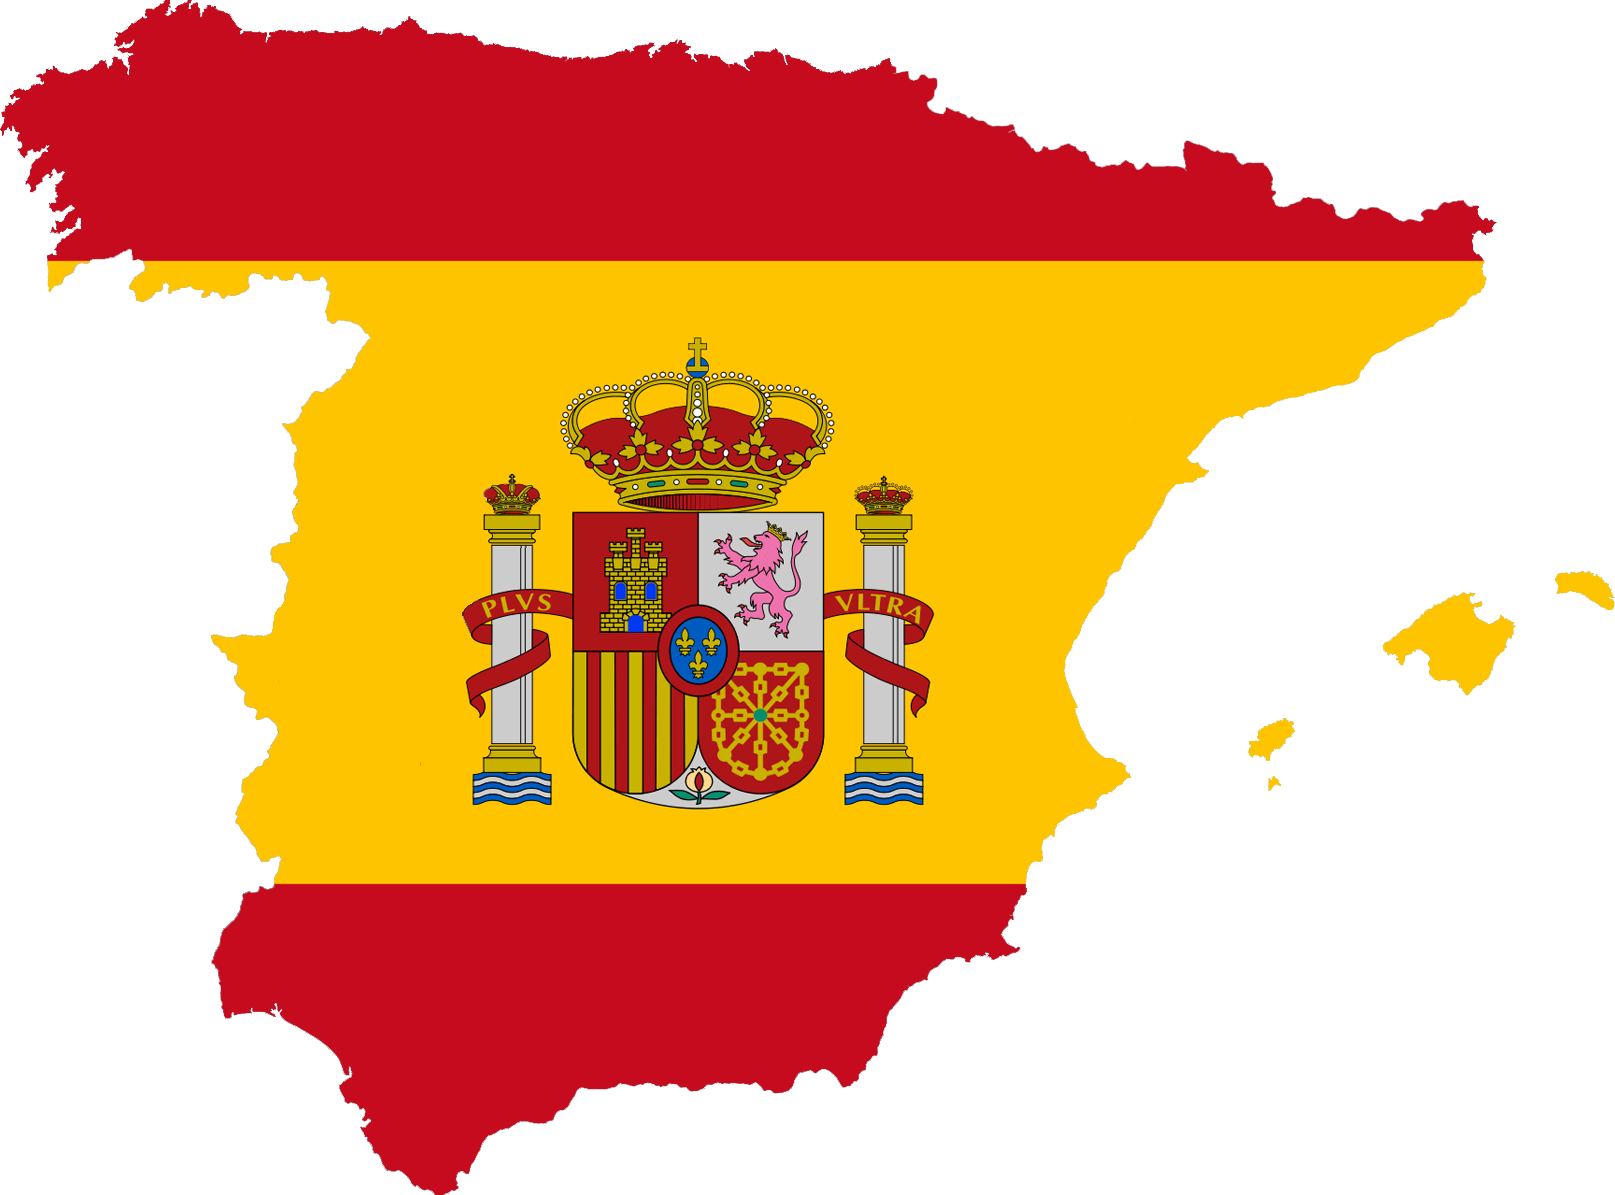 Spain flag feature